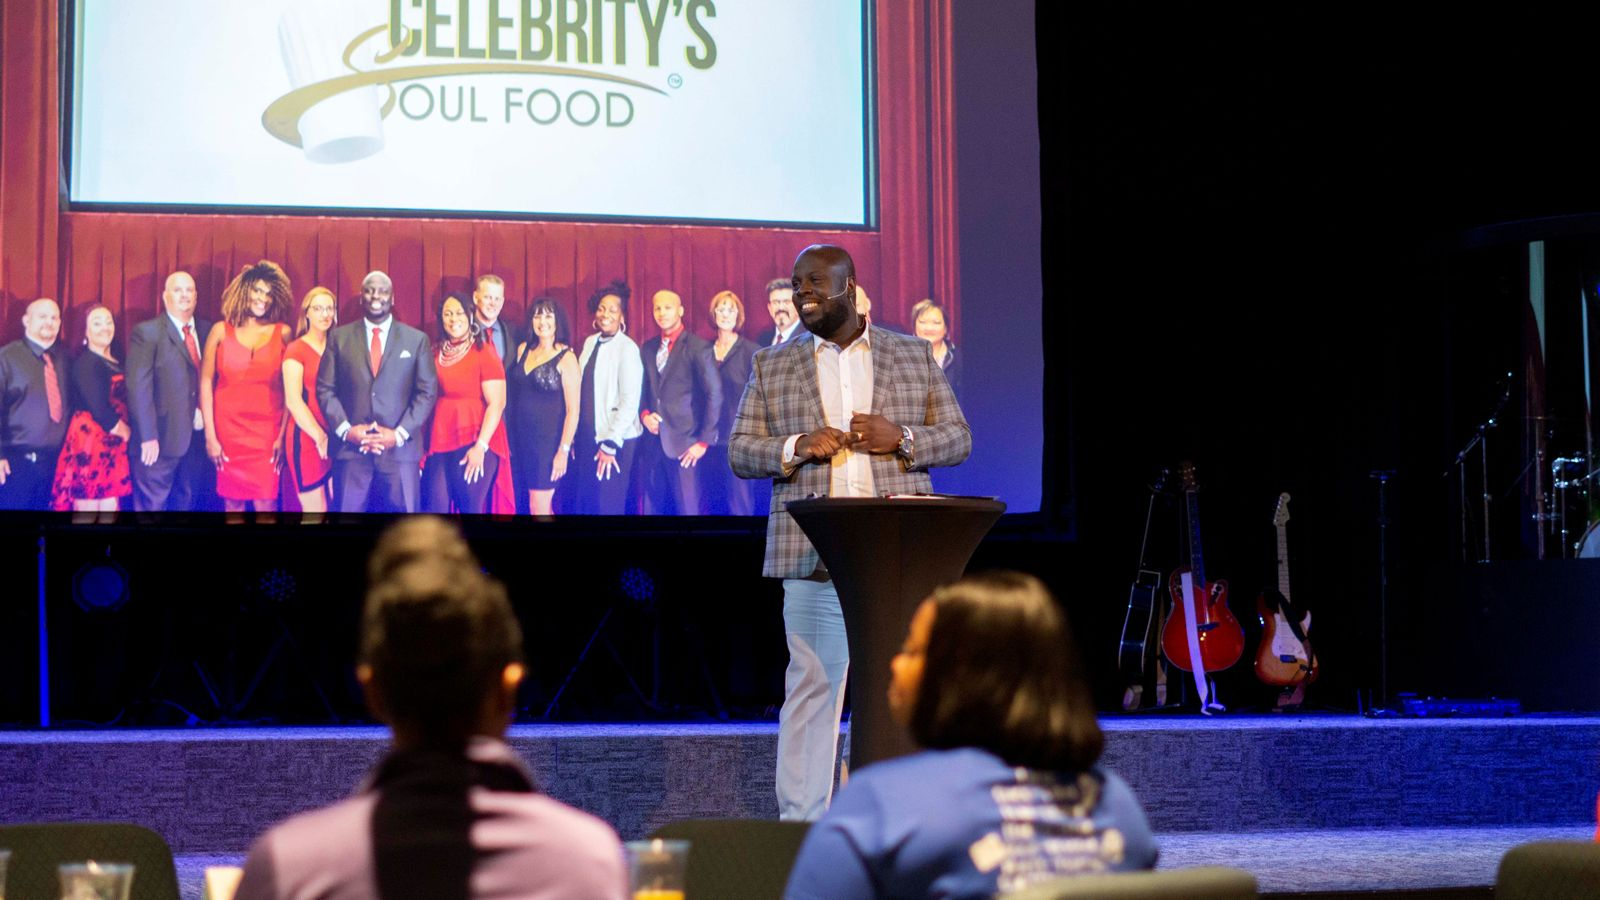 """Dr. Fredrick Jacobs of Celebrity's Soul Food, Encourages Entrepreneurs to Embrace These Uncertain Times """"The Audacity of Hope"""""""